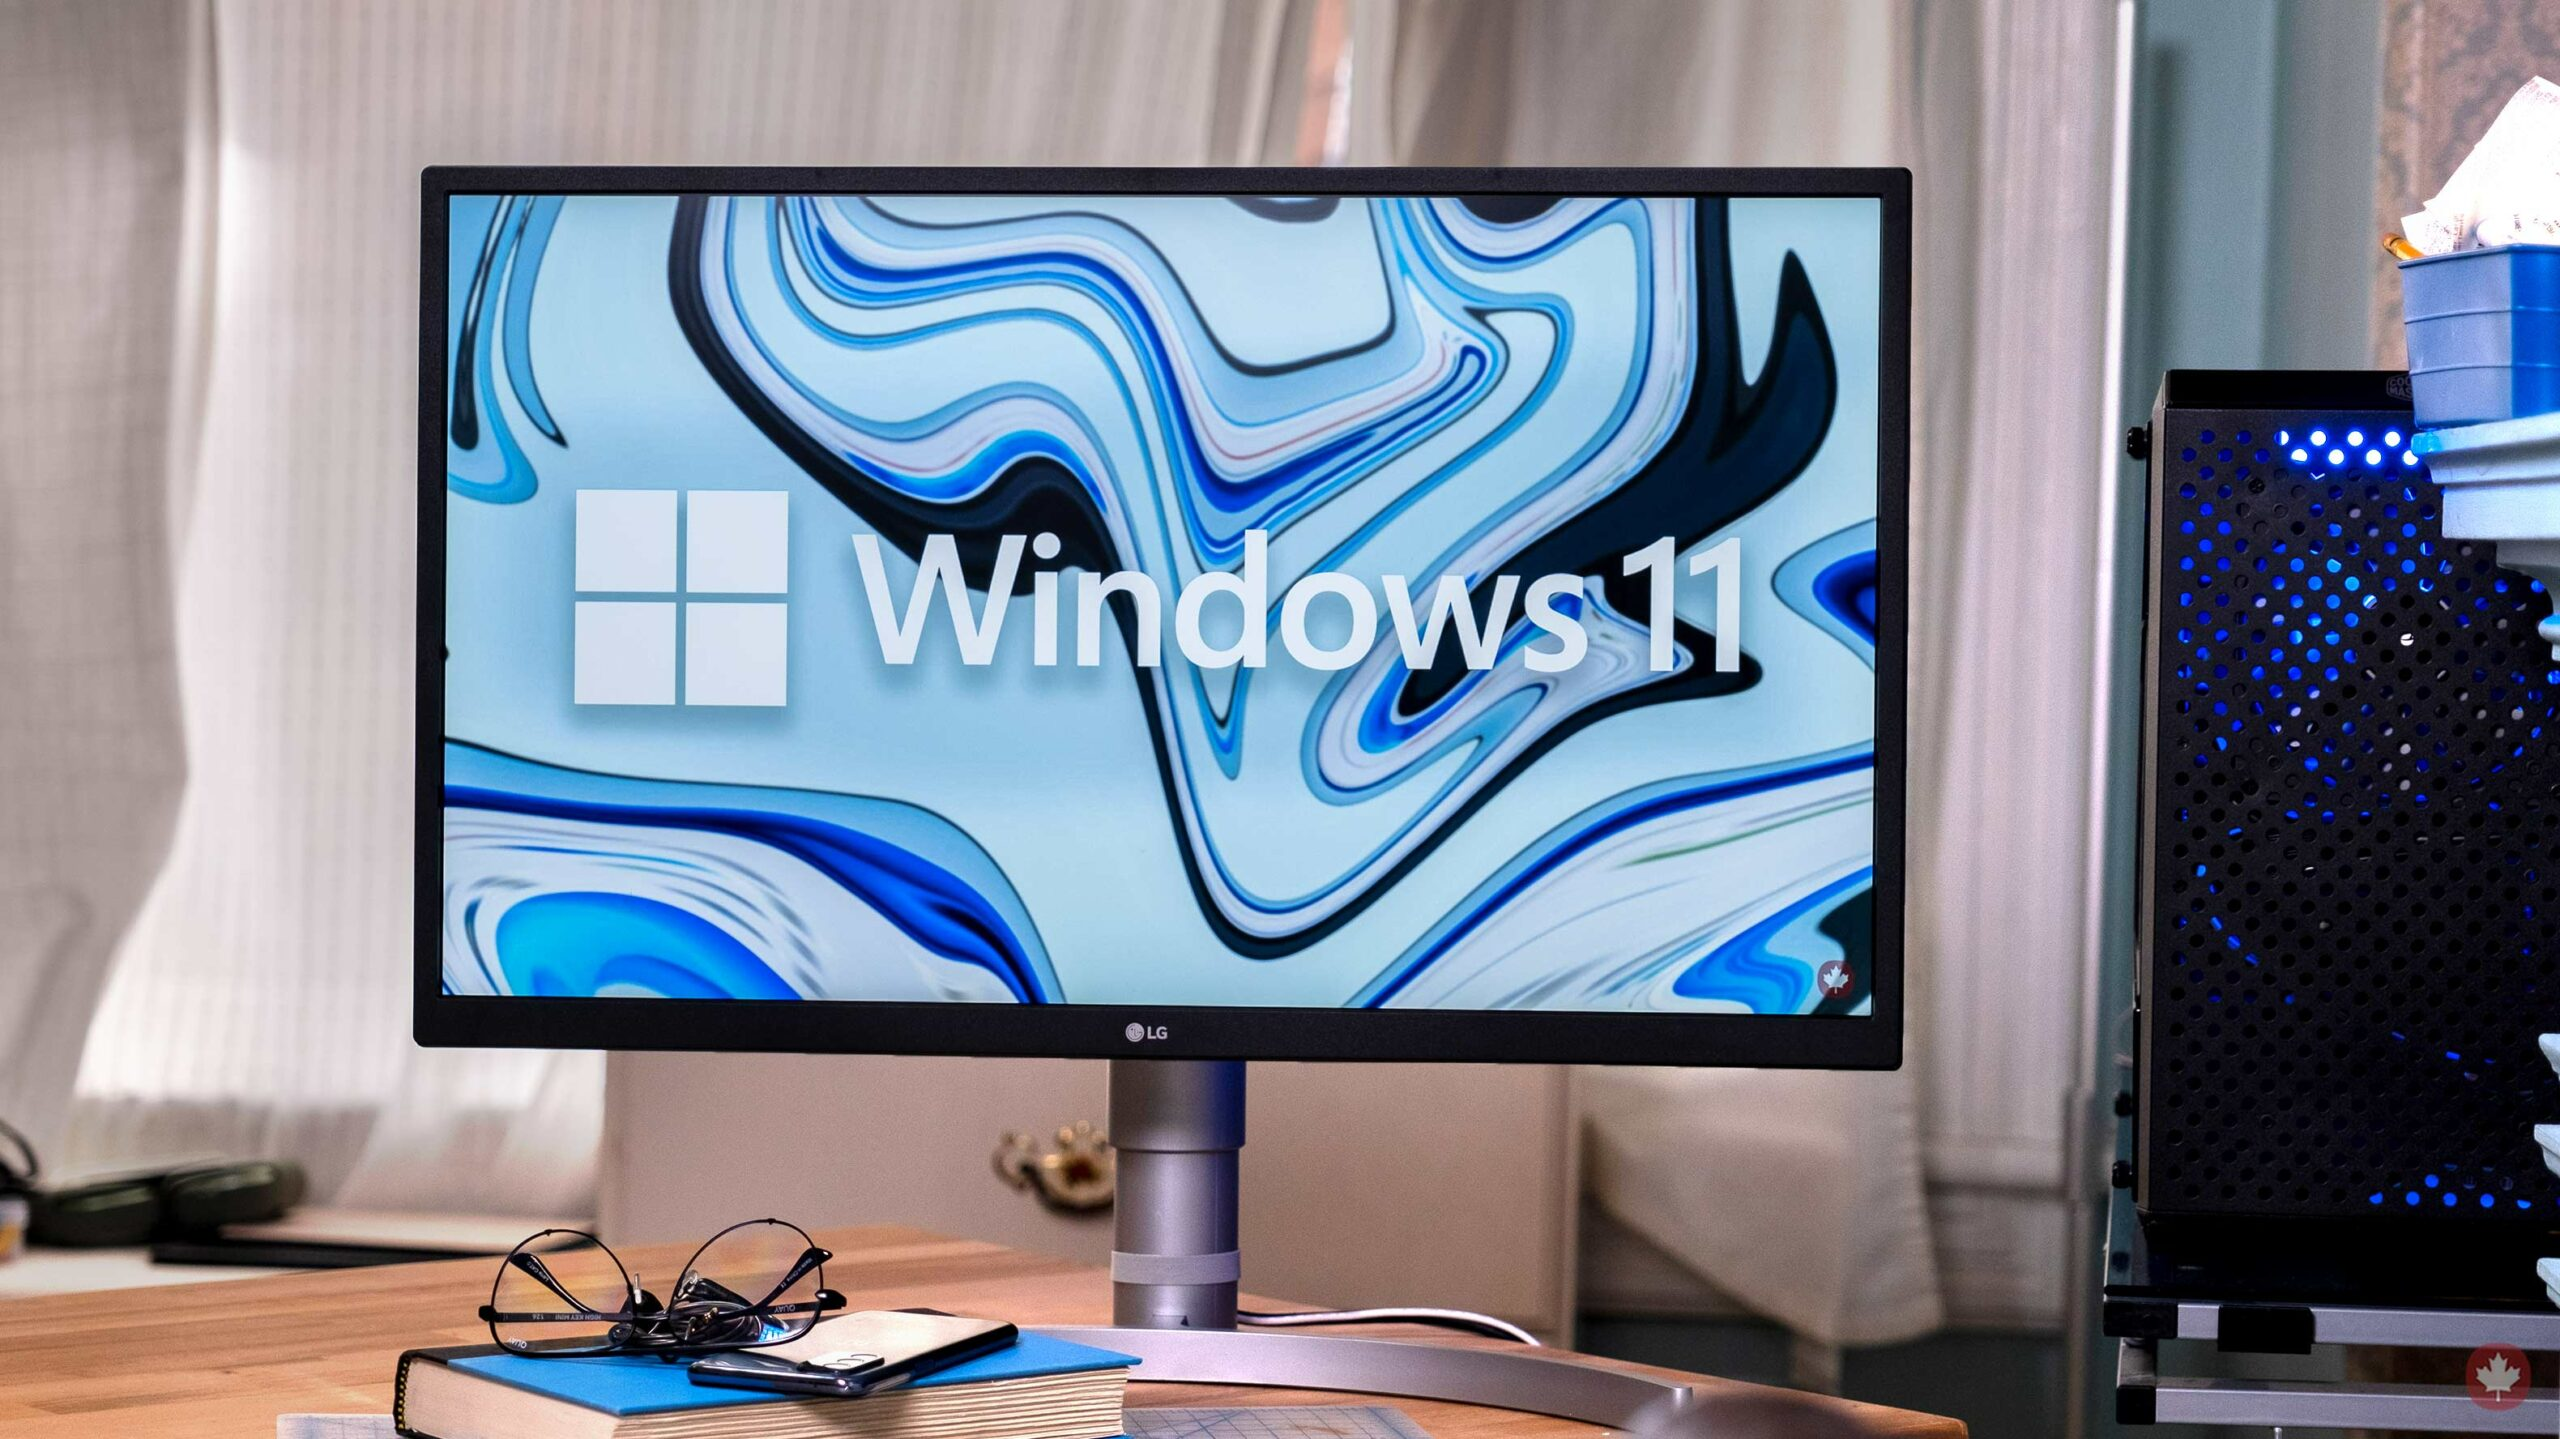 Android apps will work on Home windows 11 PCs with Intel, AMD or ARM CPUs